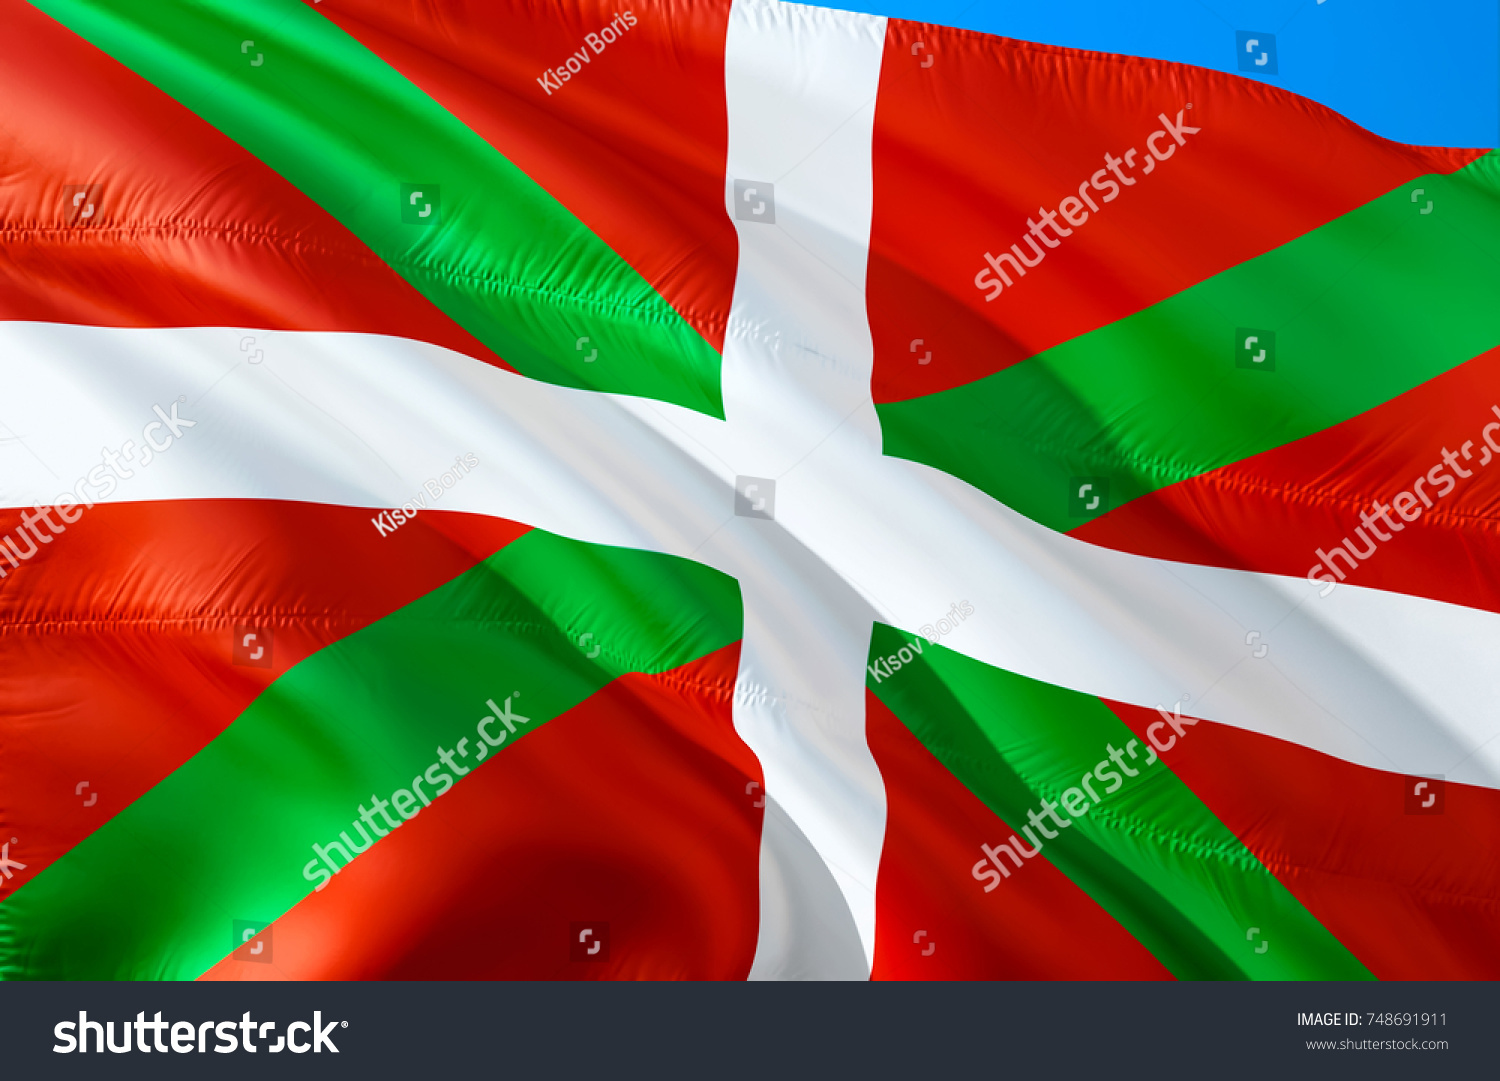 Basque coutry flag waving in the wind basque spain 3d rendering ikurrina flag